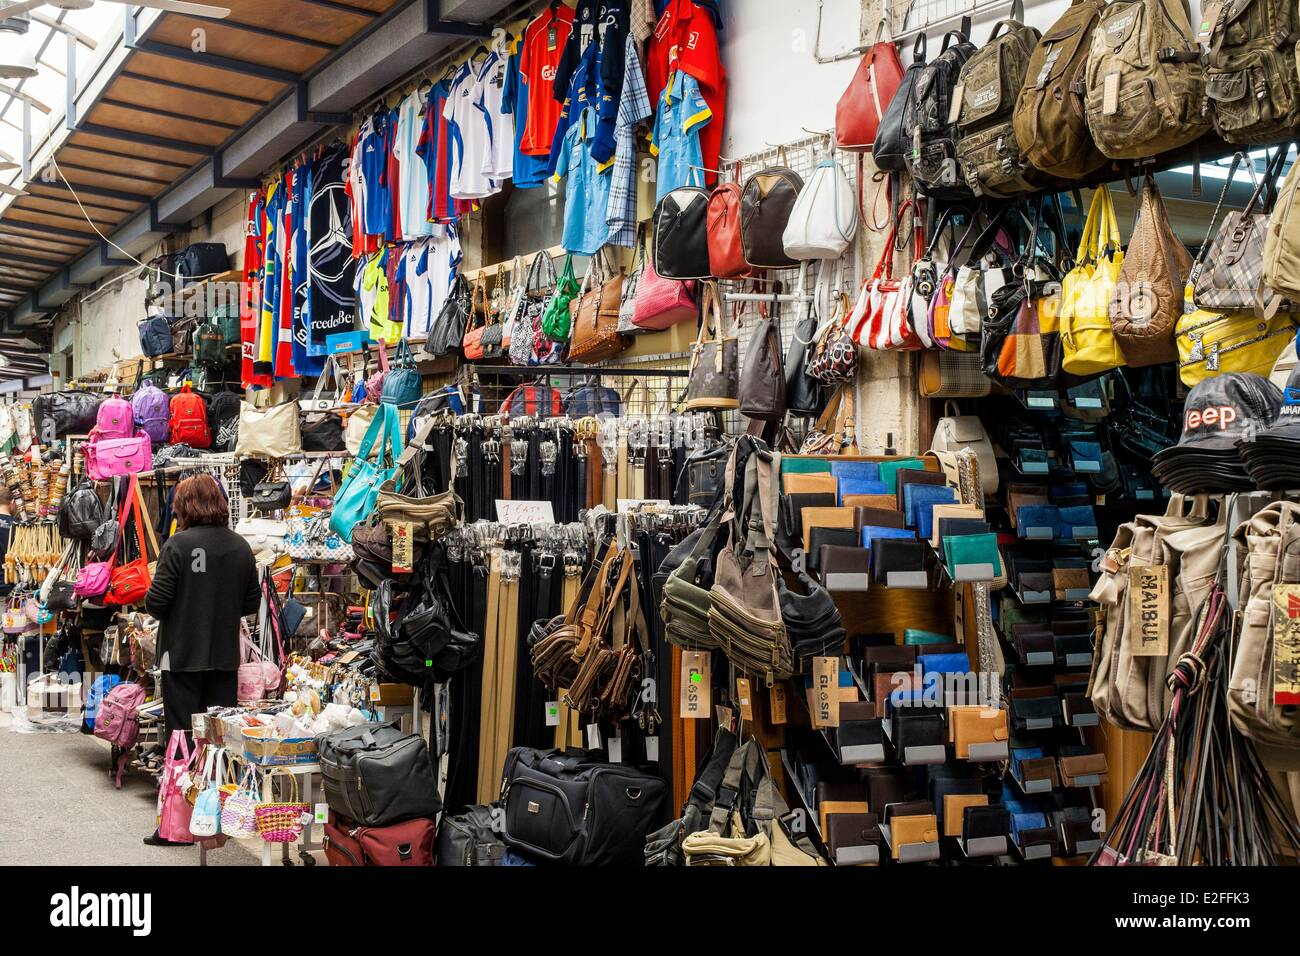 Cyprus, Paphos, indoor market, seller of clothing and fashion accessories - Stock Image